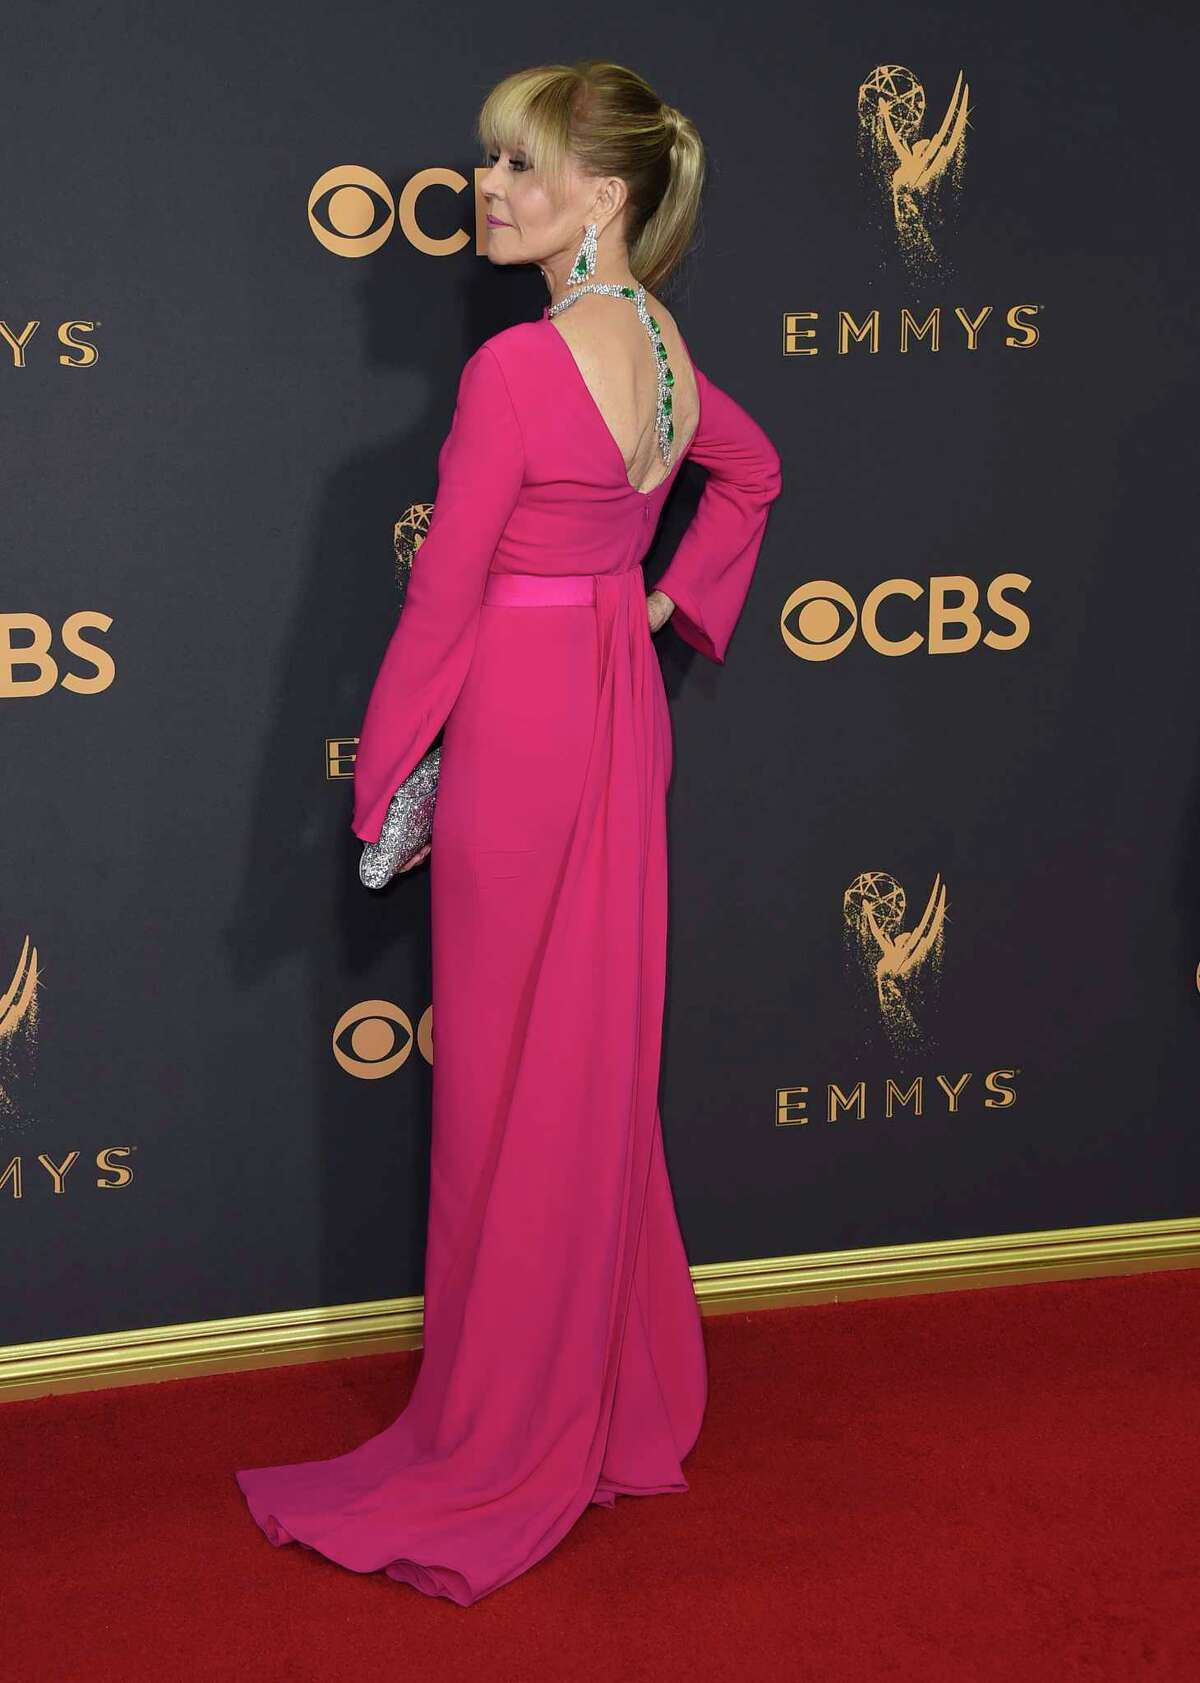 Best: Jane Fonda in Brandon Maxwell (except for those bangs)